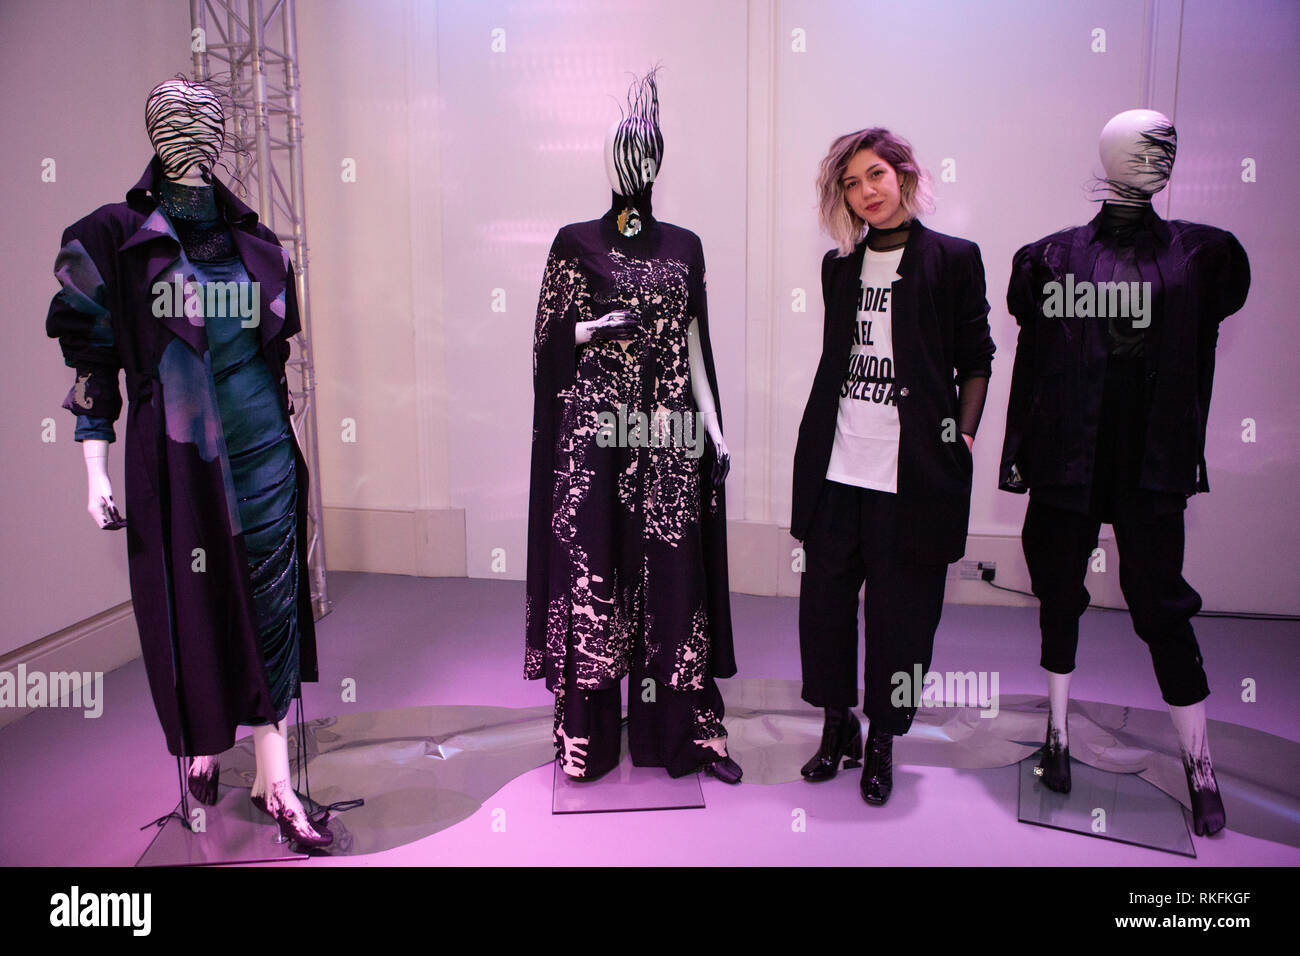 Fashion Designer Clara Aguayo From Uruguay With Some Of Her Work He International Fashion Showcase At Somerset House Ahead Of London Fashion Week P Stock Photo Alamy